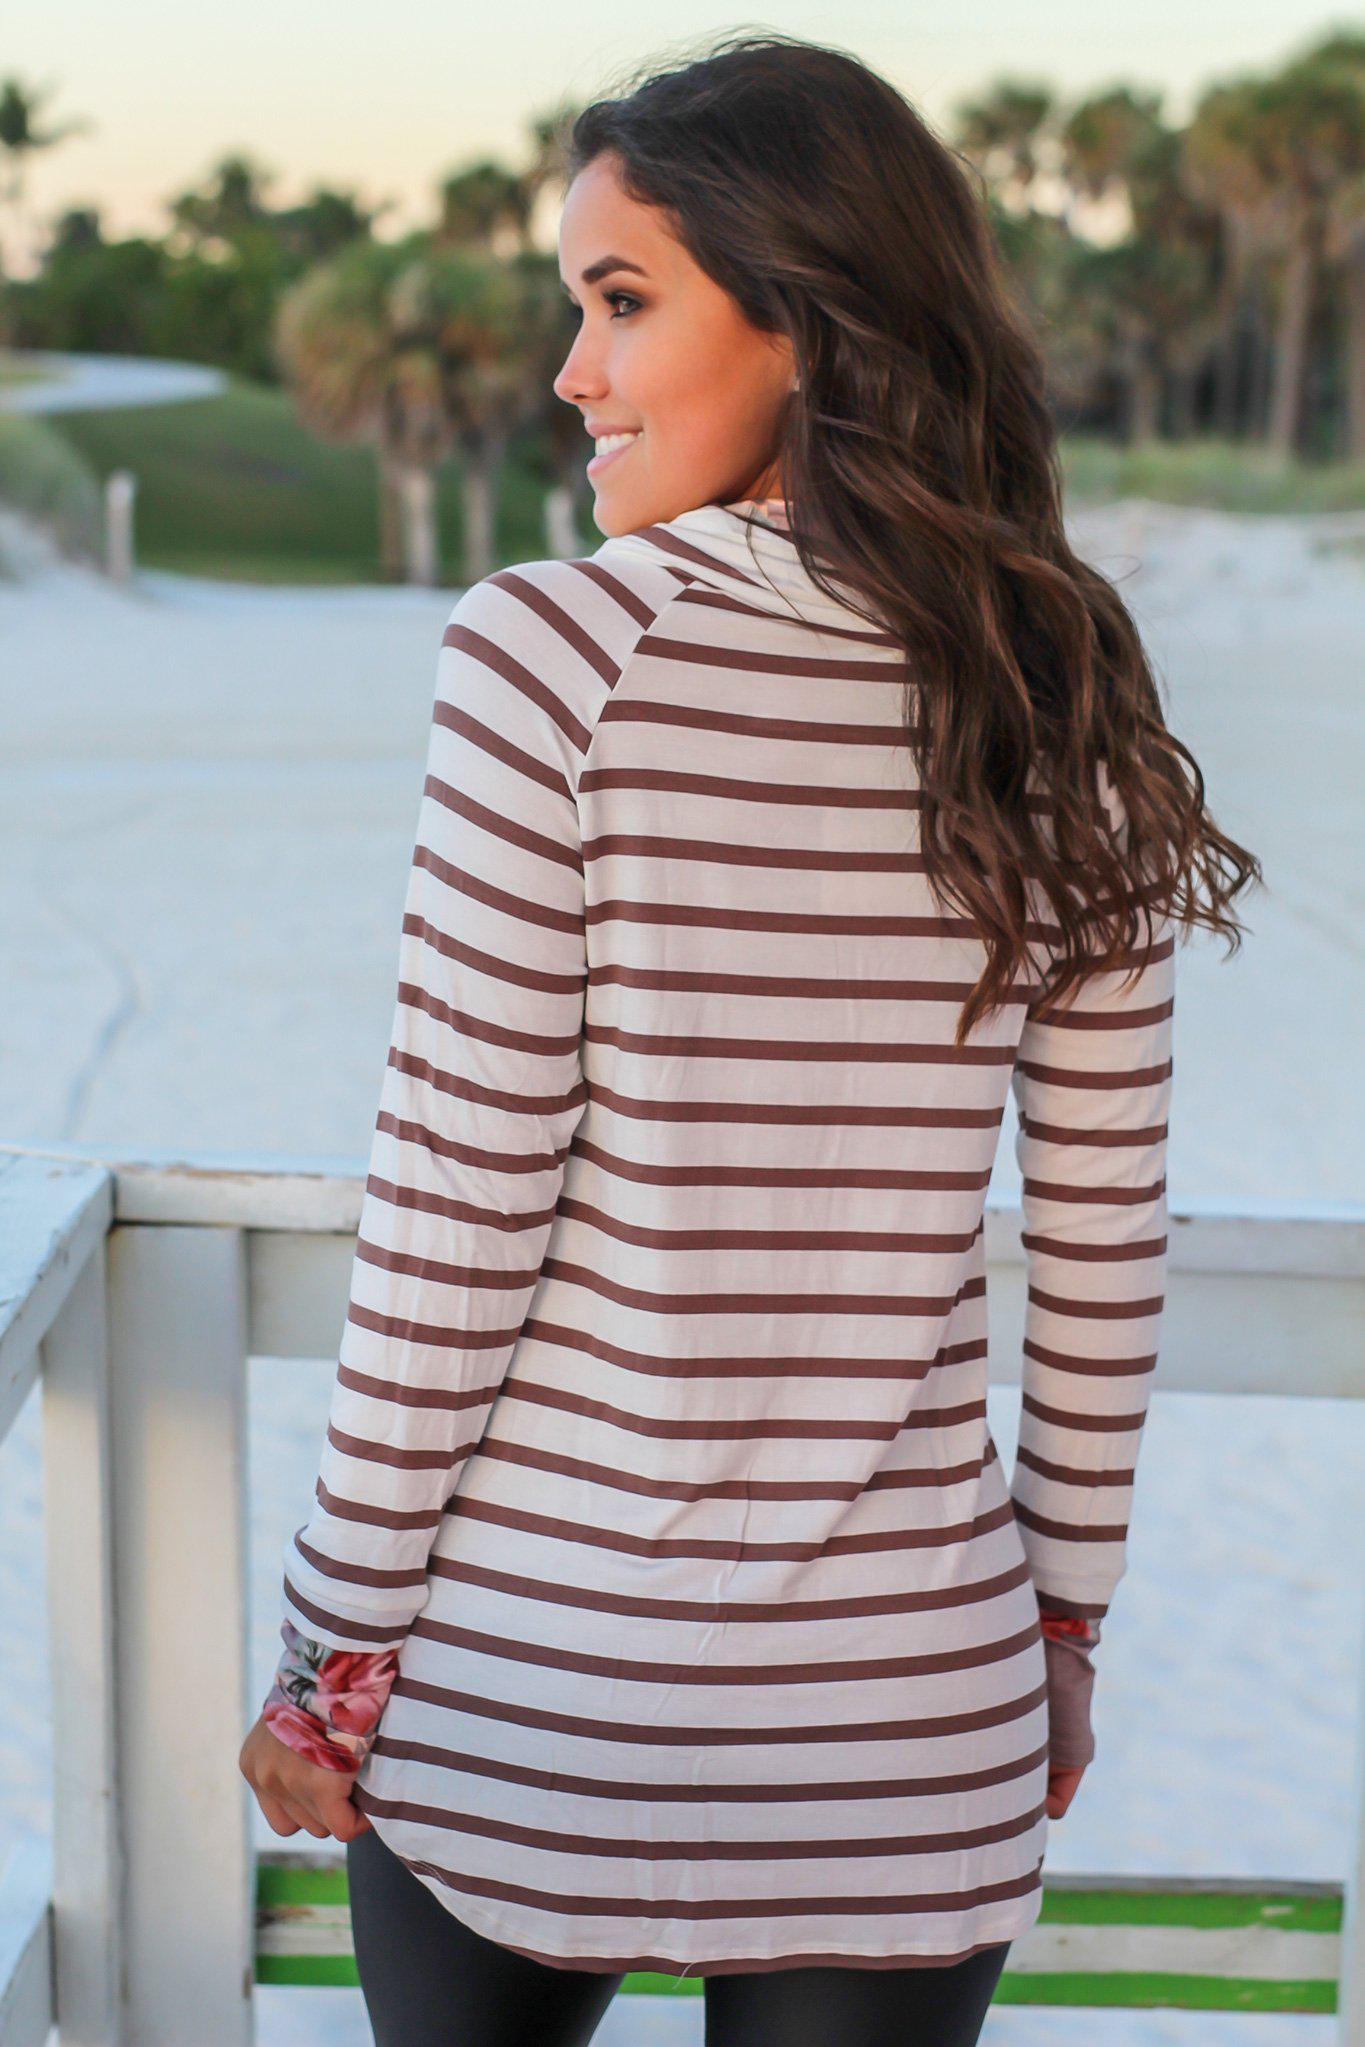 Mocha Striped Top with Floral Cowl Neck